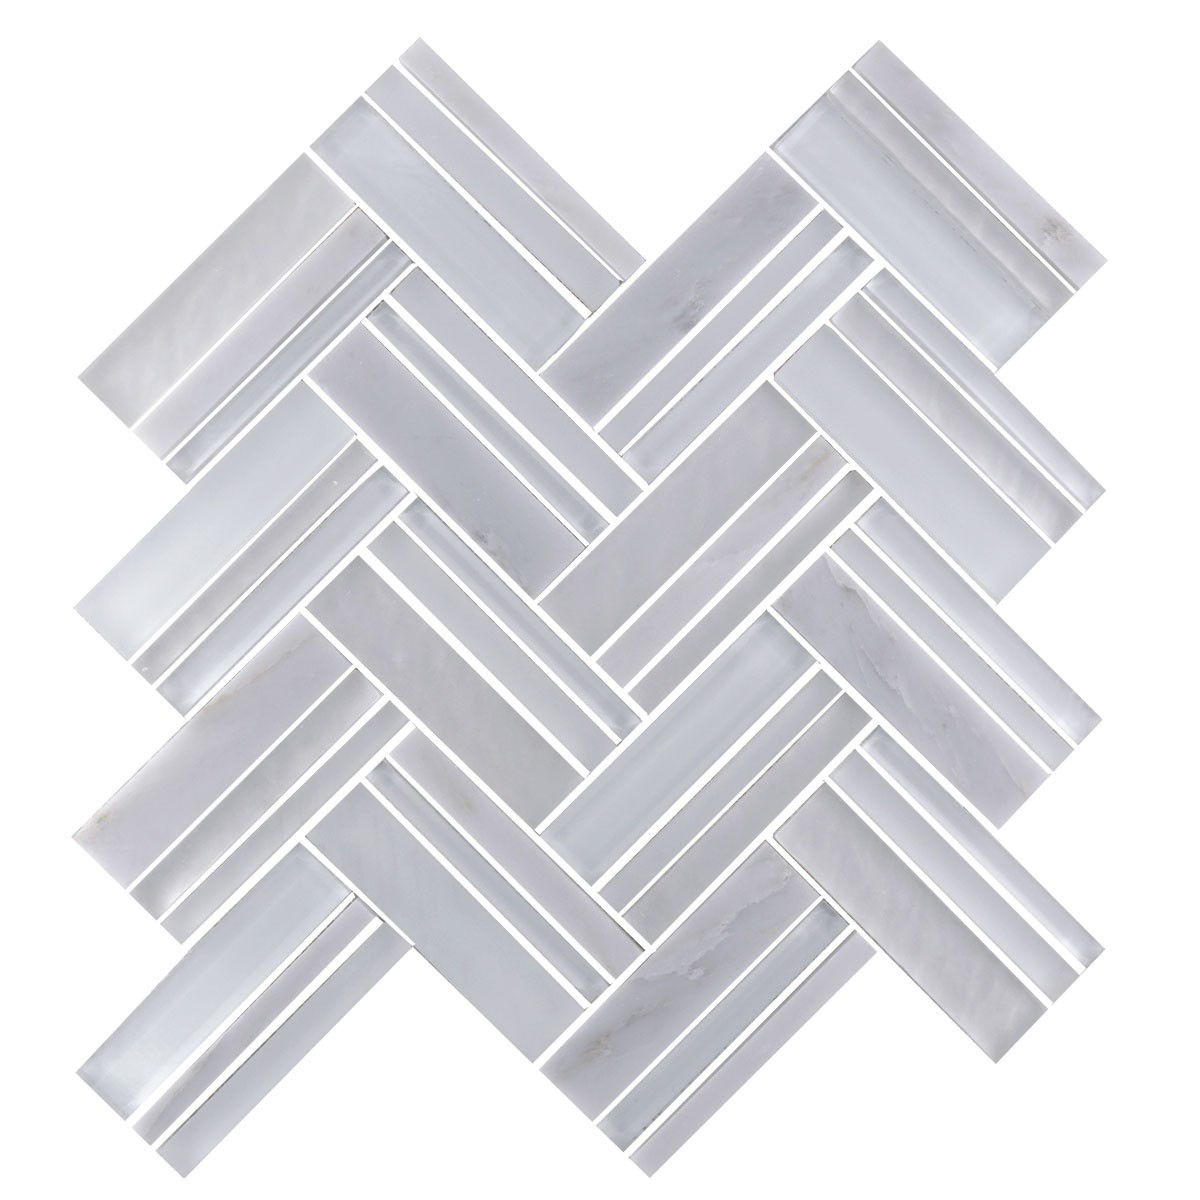 12.4 in. x 13.8 in. Glass and Stone Blend Strip Mosaic Tile - 8mm Thickness (DK-8NF0606-001)